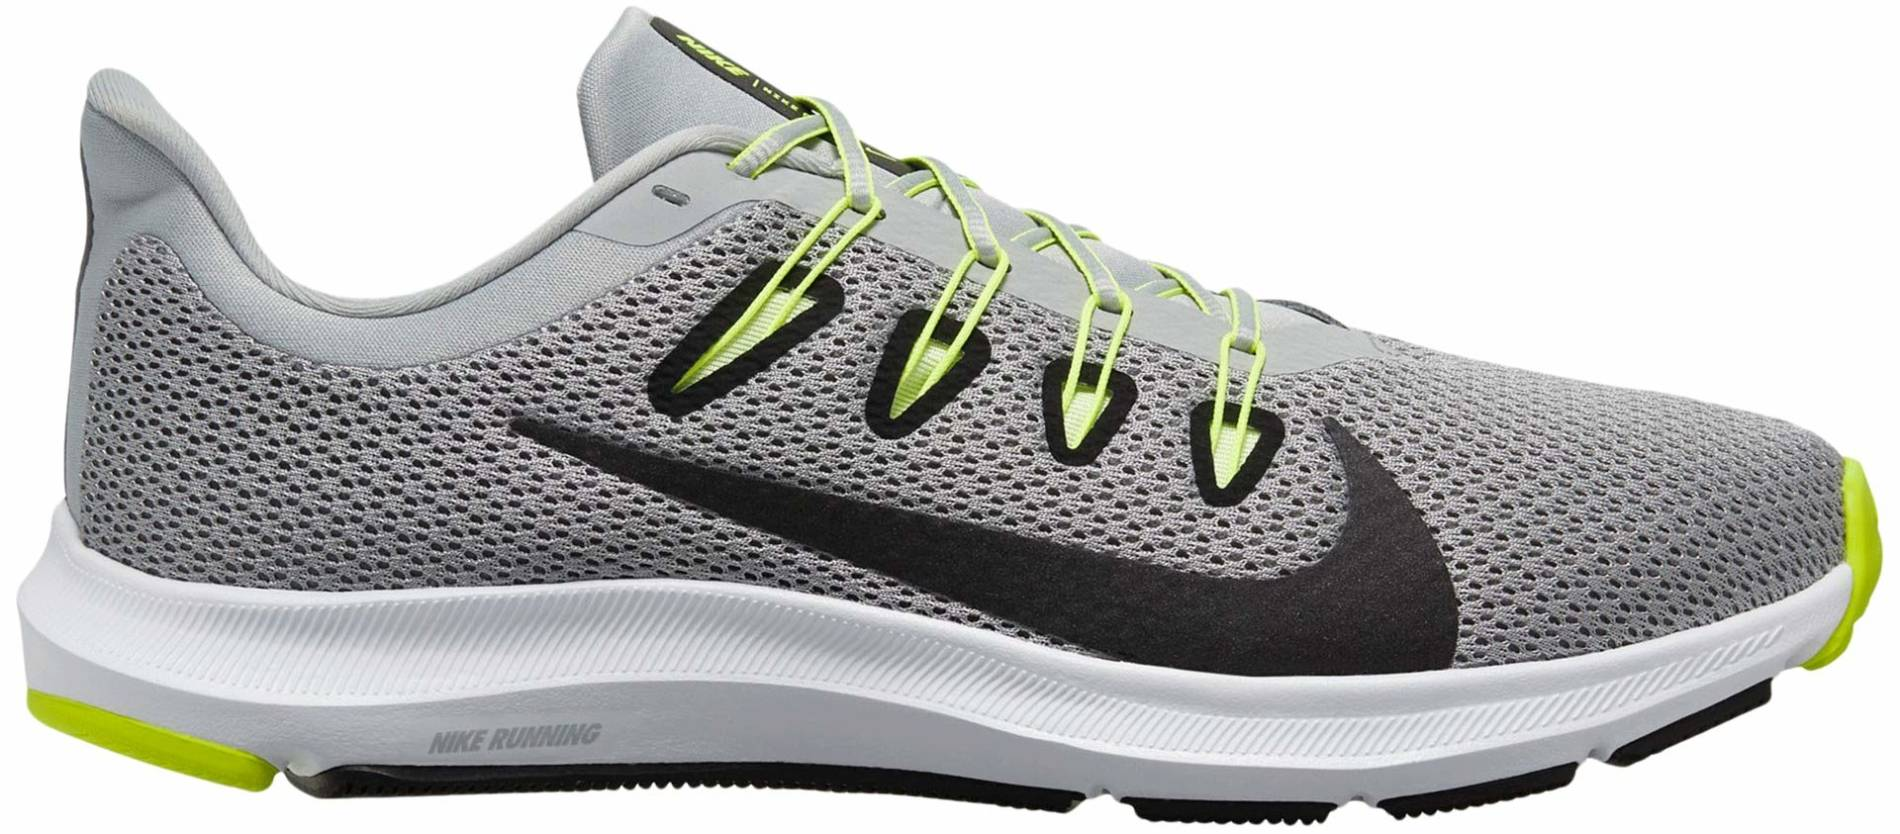 Only $56 + Review of Nike Quest 2